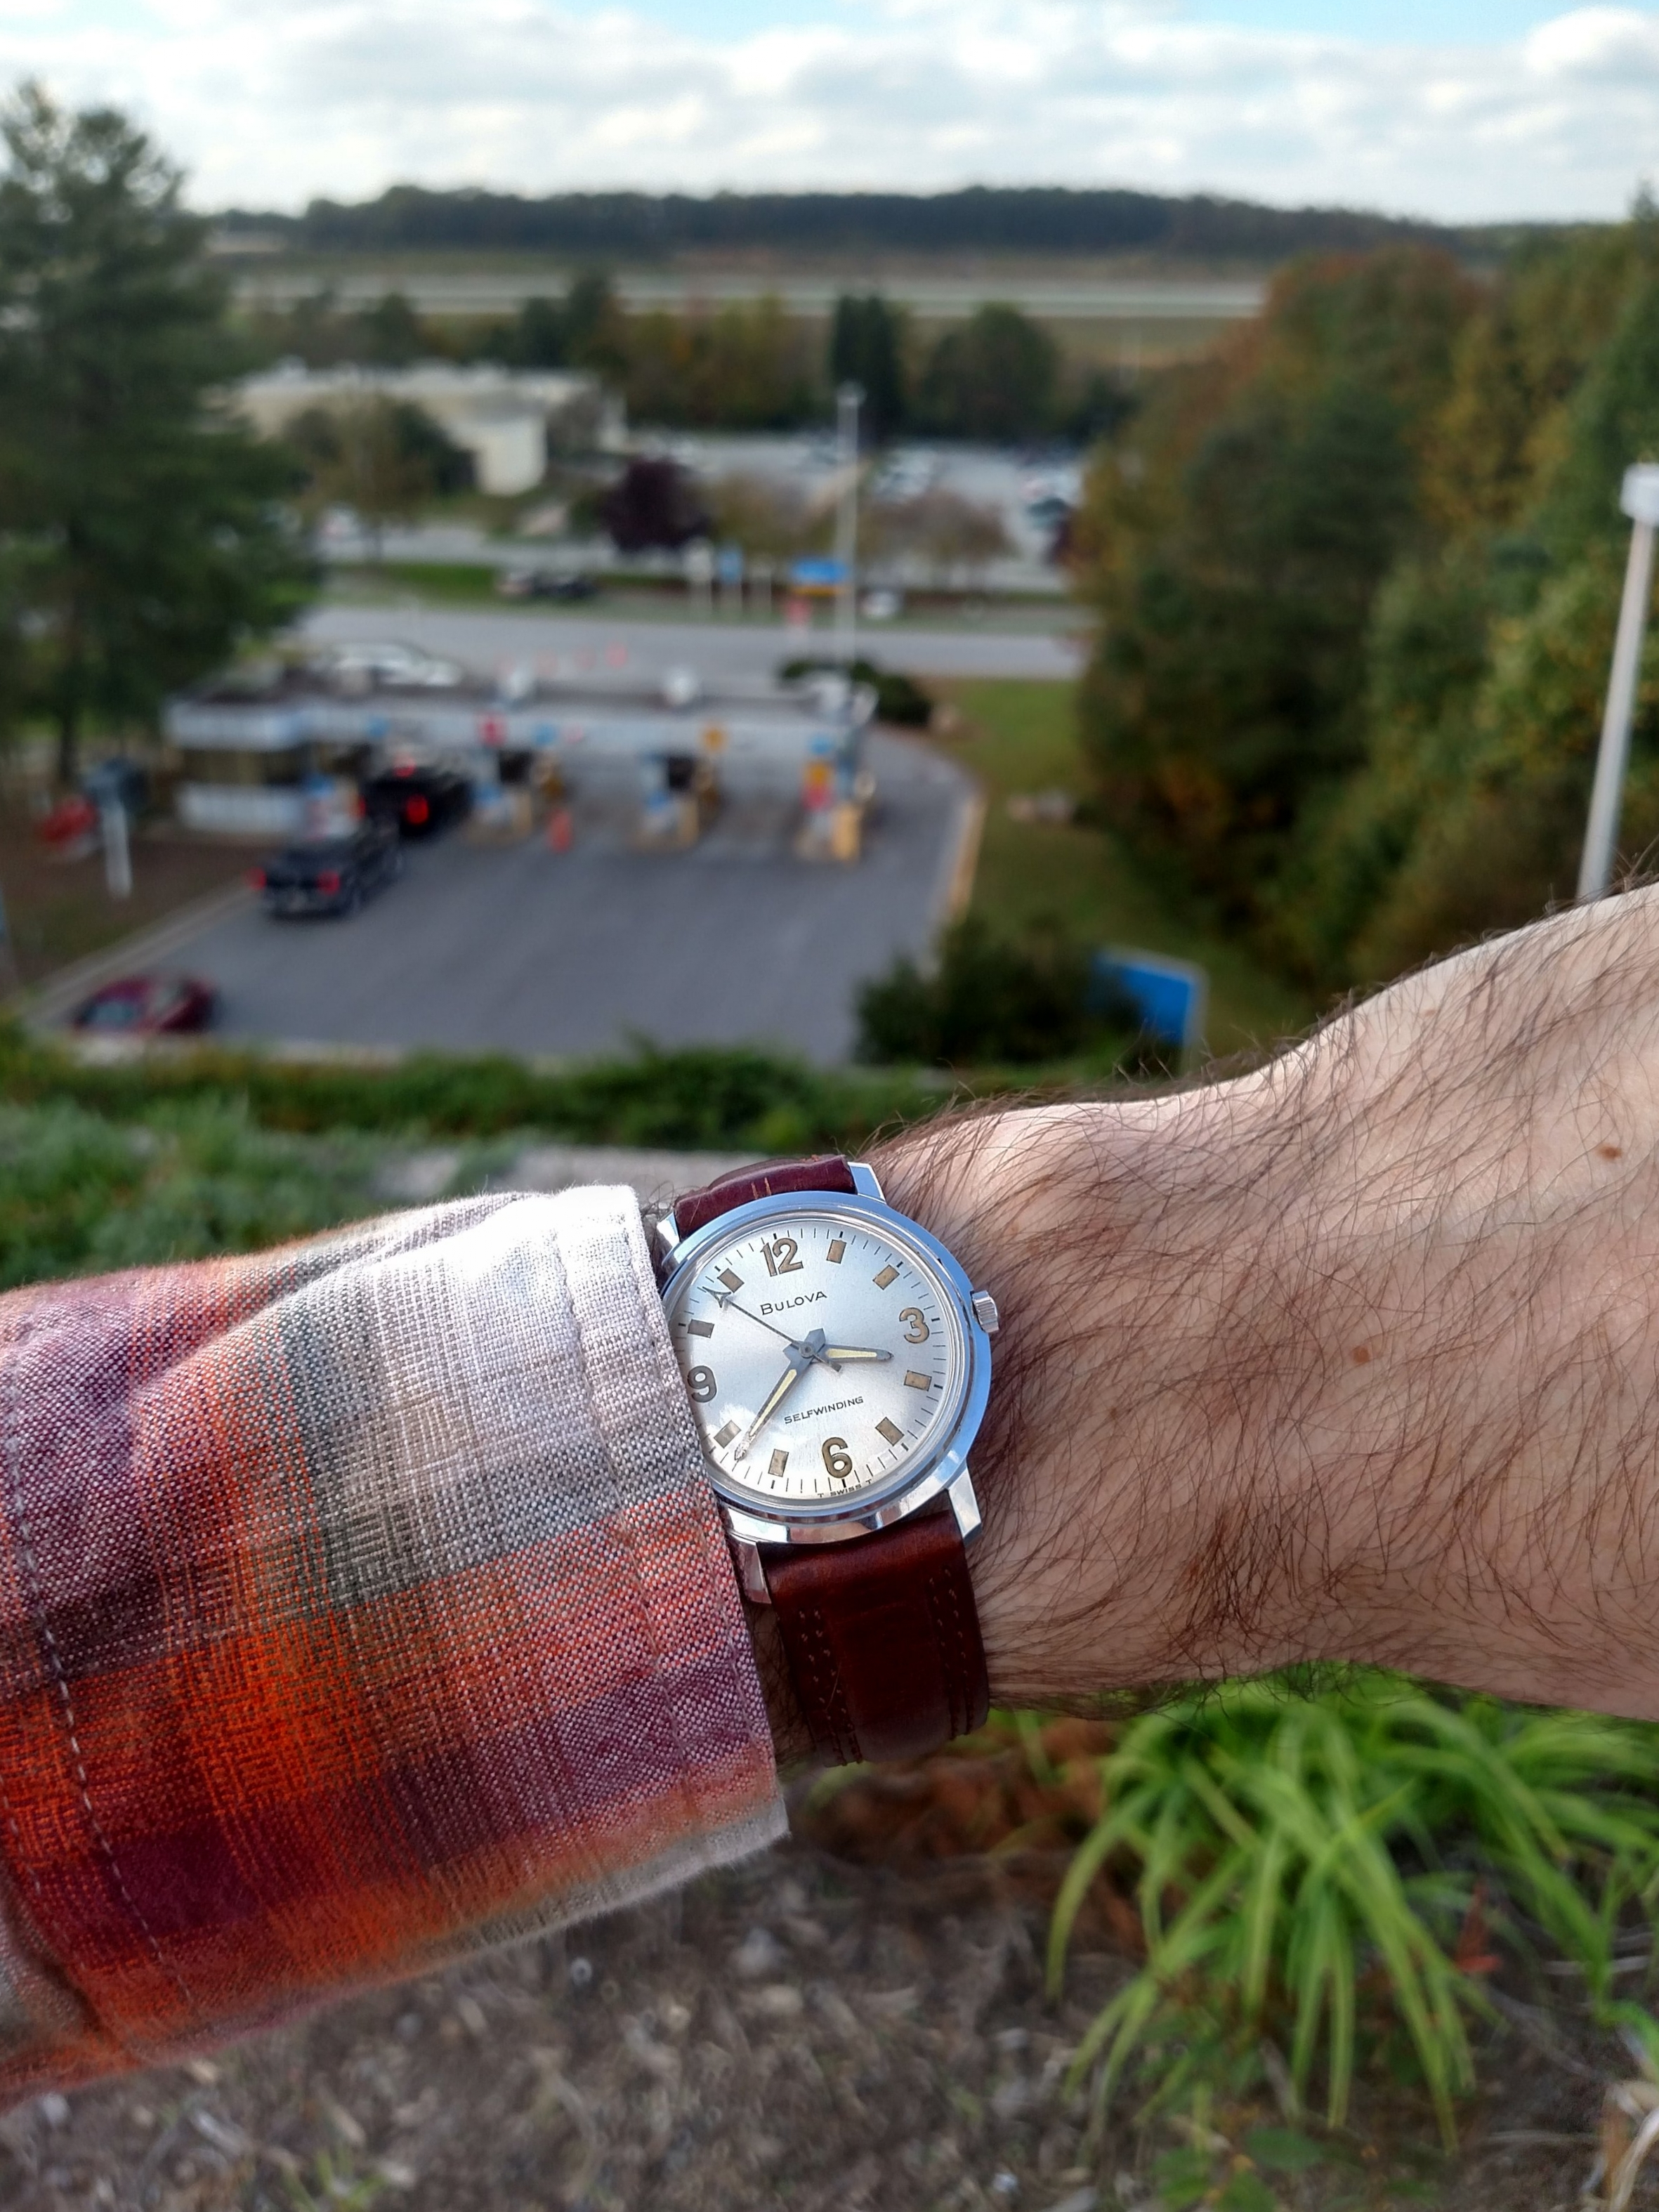 1965 Bulova at Peidmont Triad International Airport  Greensboro, North Carolina